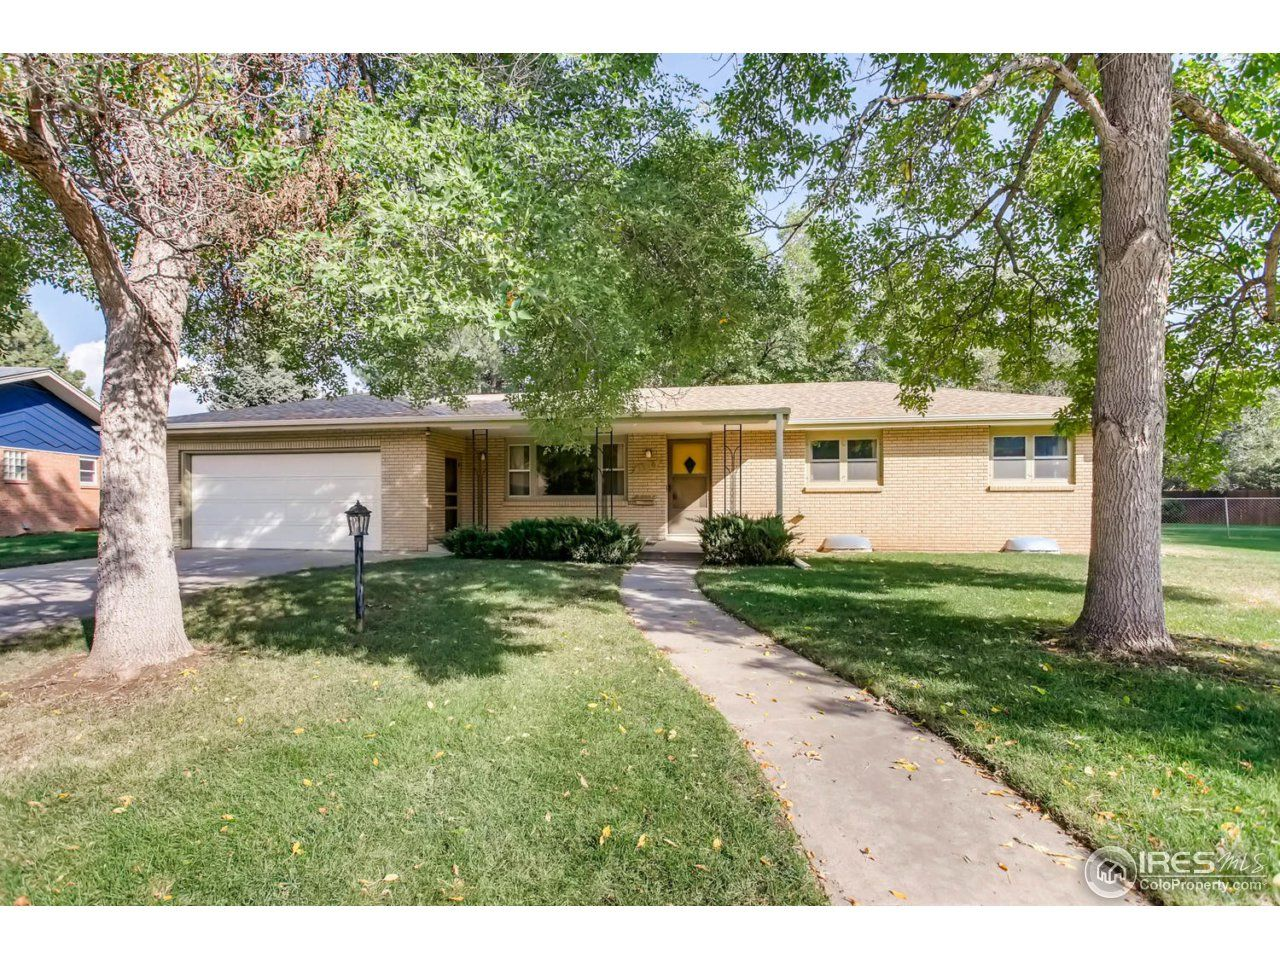 1320 alford st, fort collins, co 80524 - estimate and home details